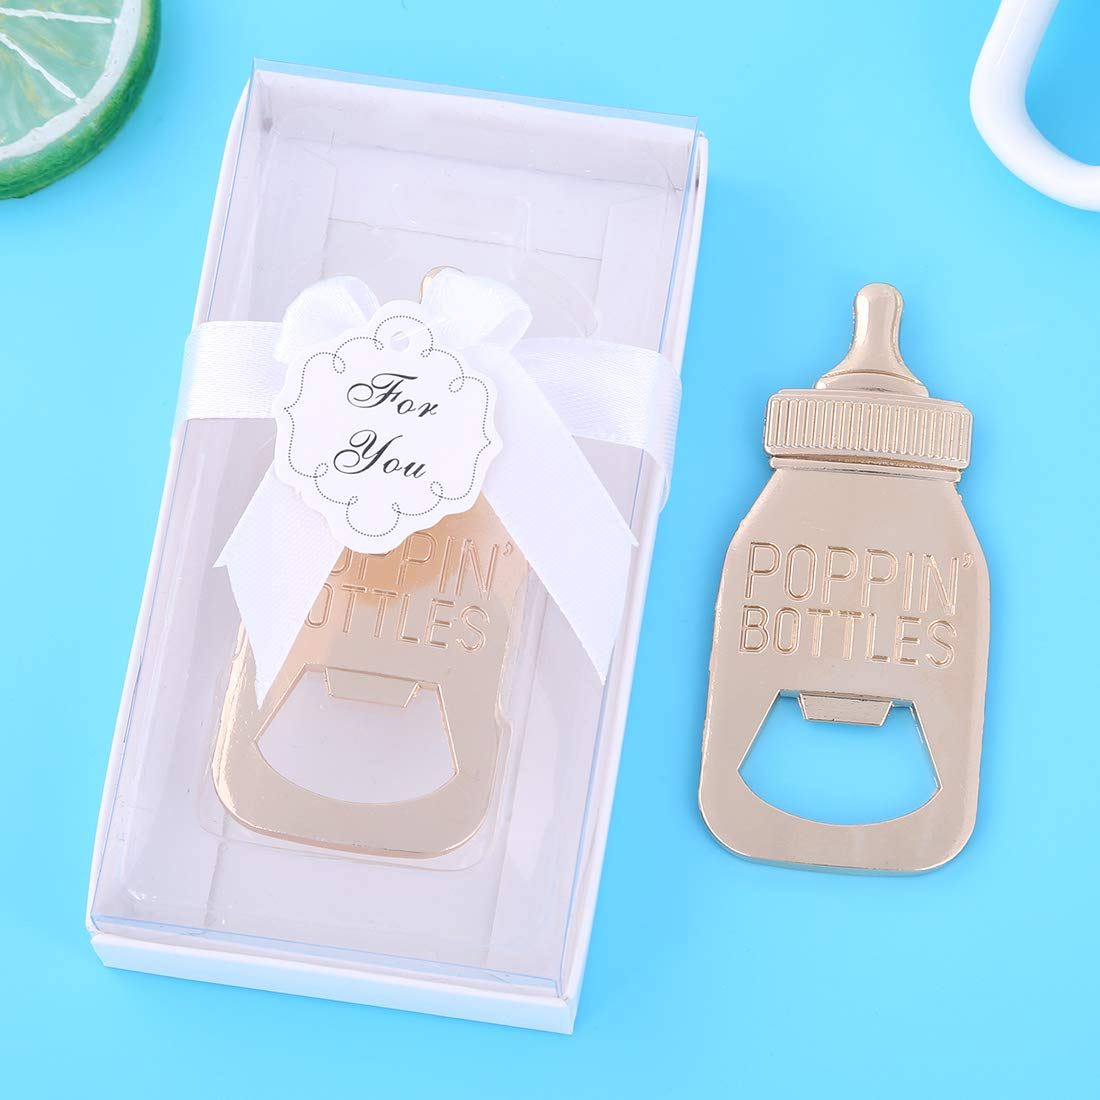 Pack of 36 Baby Shower Return Gifts for Guest Supplies Poppin Baby Bottle Shaped Bottle Opener Wedding Favor with Exquisite Packaging Party Souvenirs Gift Decorations by WeddParty (White, 36)